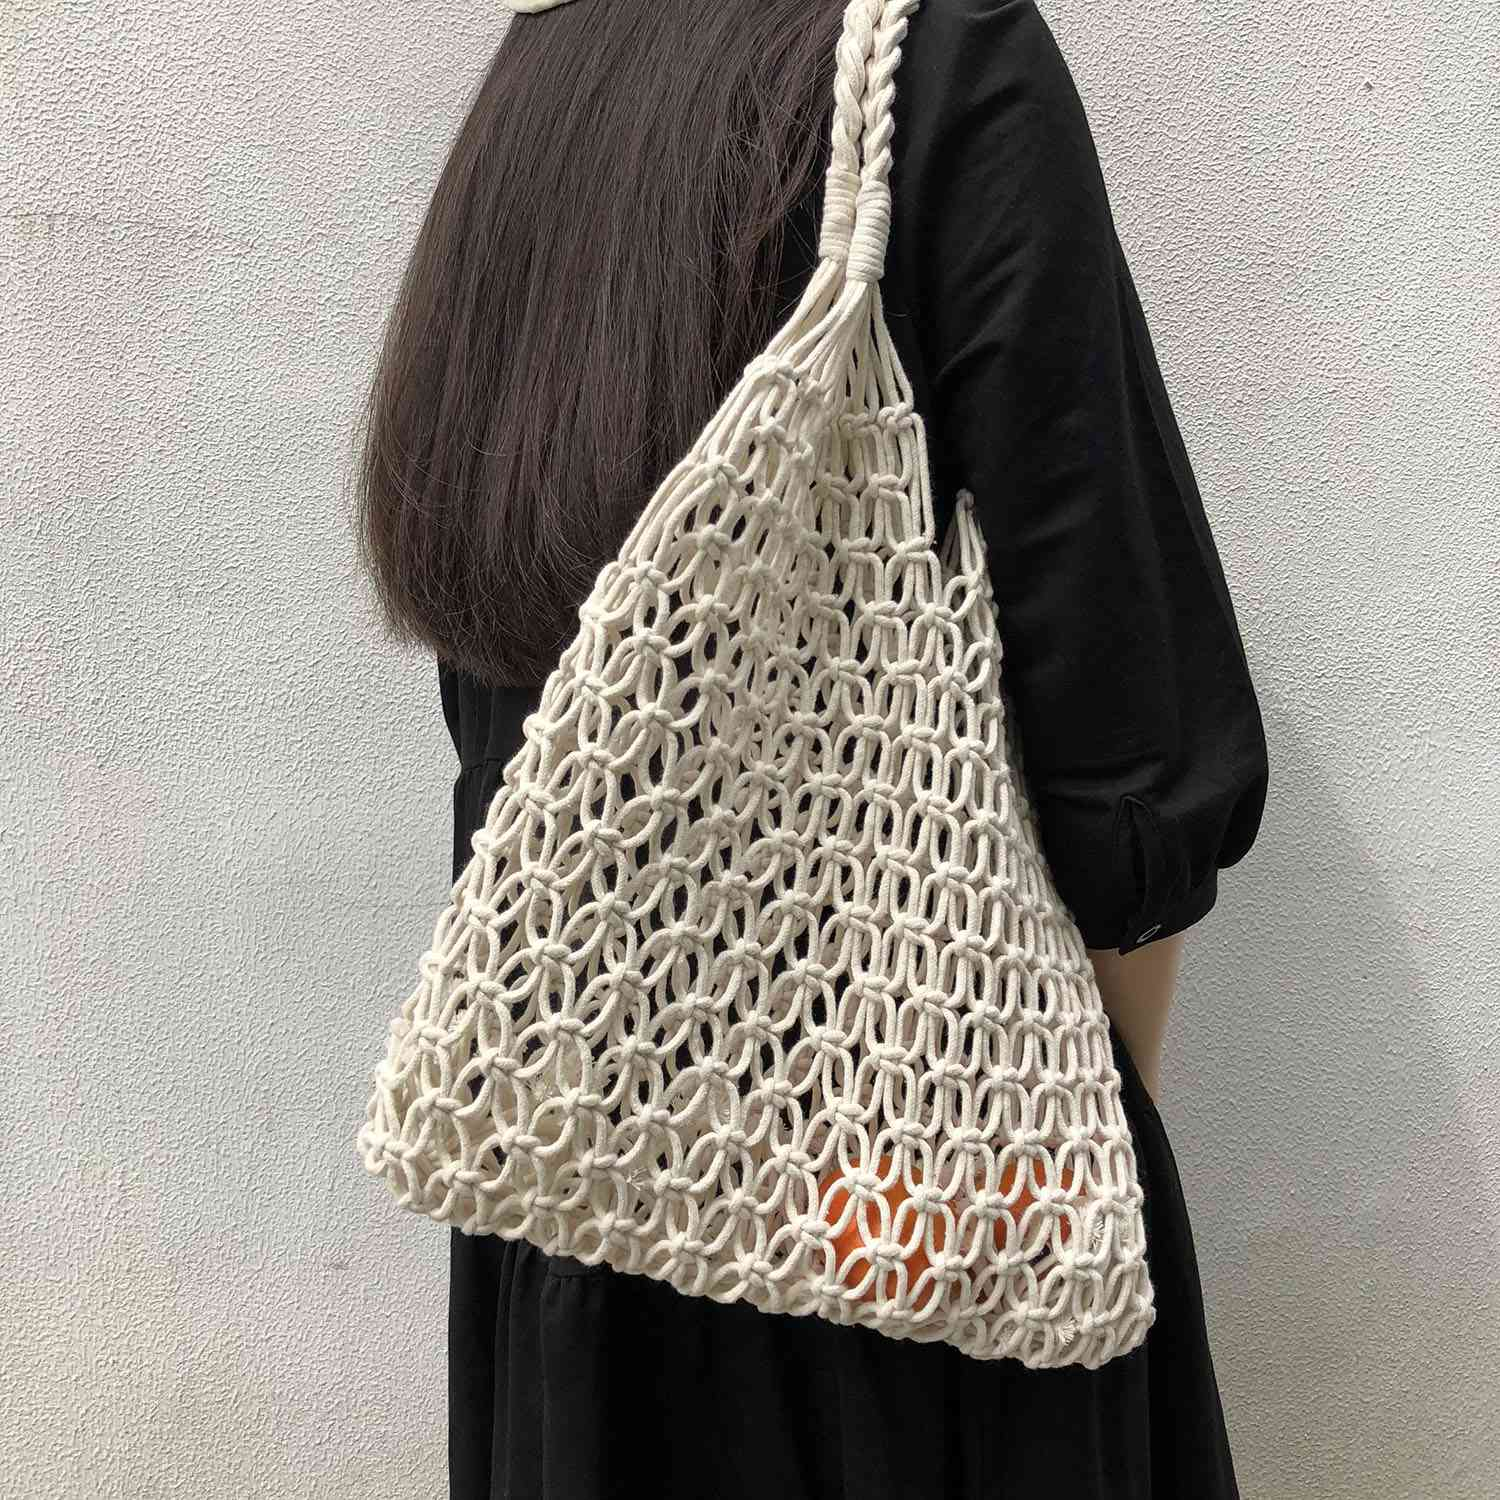 Fashion Popular Woven Bag Mesh Rope Weaving Tie Buckle Reticulate Hollow Bag No Lined Net Shoulder BagFashion Popular Woven Bag Mesh Rope Weaving Tie Buckle Reticulate Hollow Bag No Lined Net Shoulder Bag